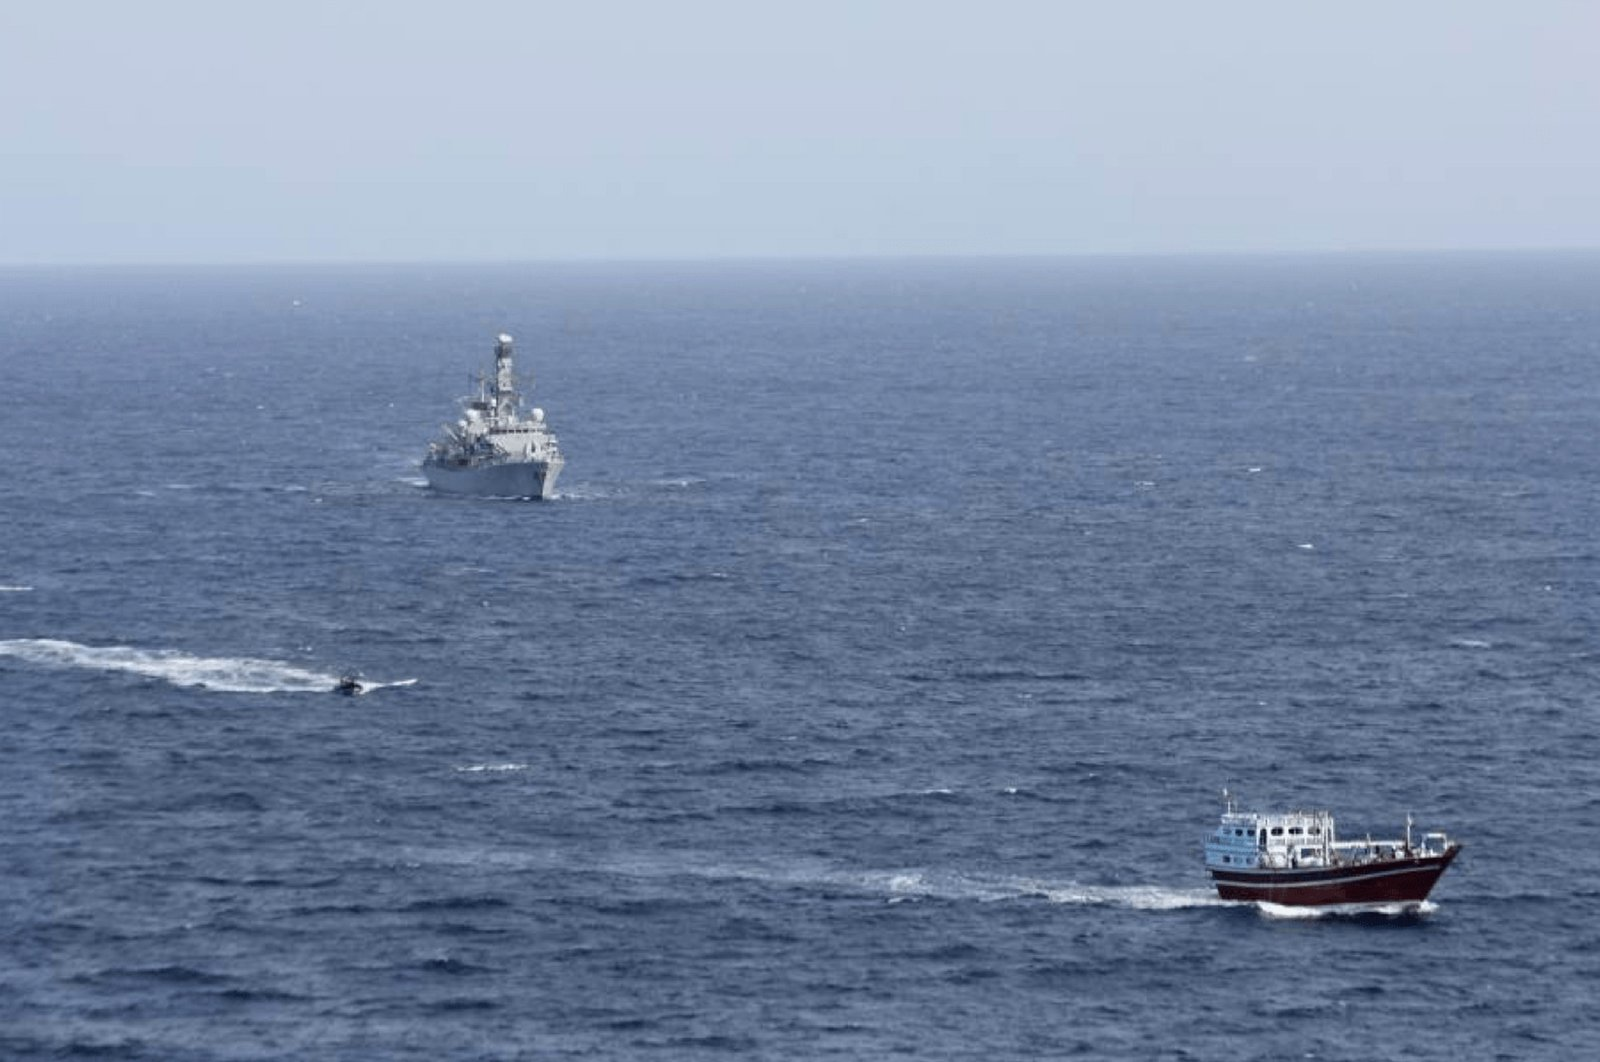 In this photo released by Combined Maritime Forces, a boarding team from a British royal navy vessel, the HMS Montrose, transits toward a stateless dhow, a traditional cargo ship that plies the Persian Gulf and surrounding waters, in the northern Arabian Sea, Oct. 14, 2020. (AP Photo)